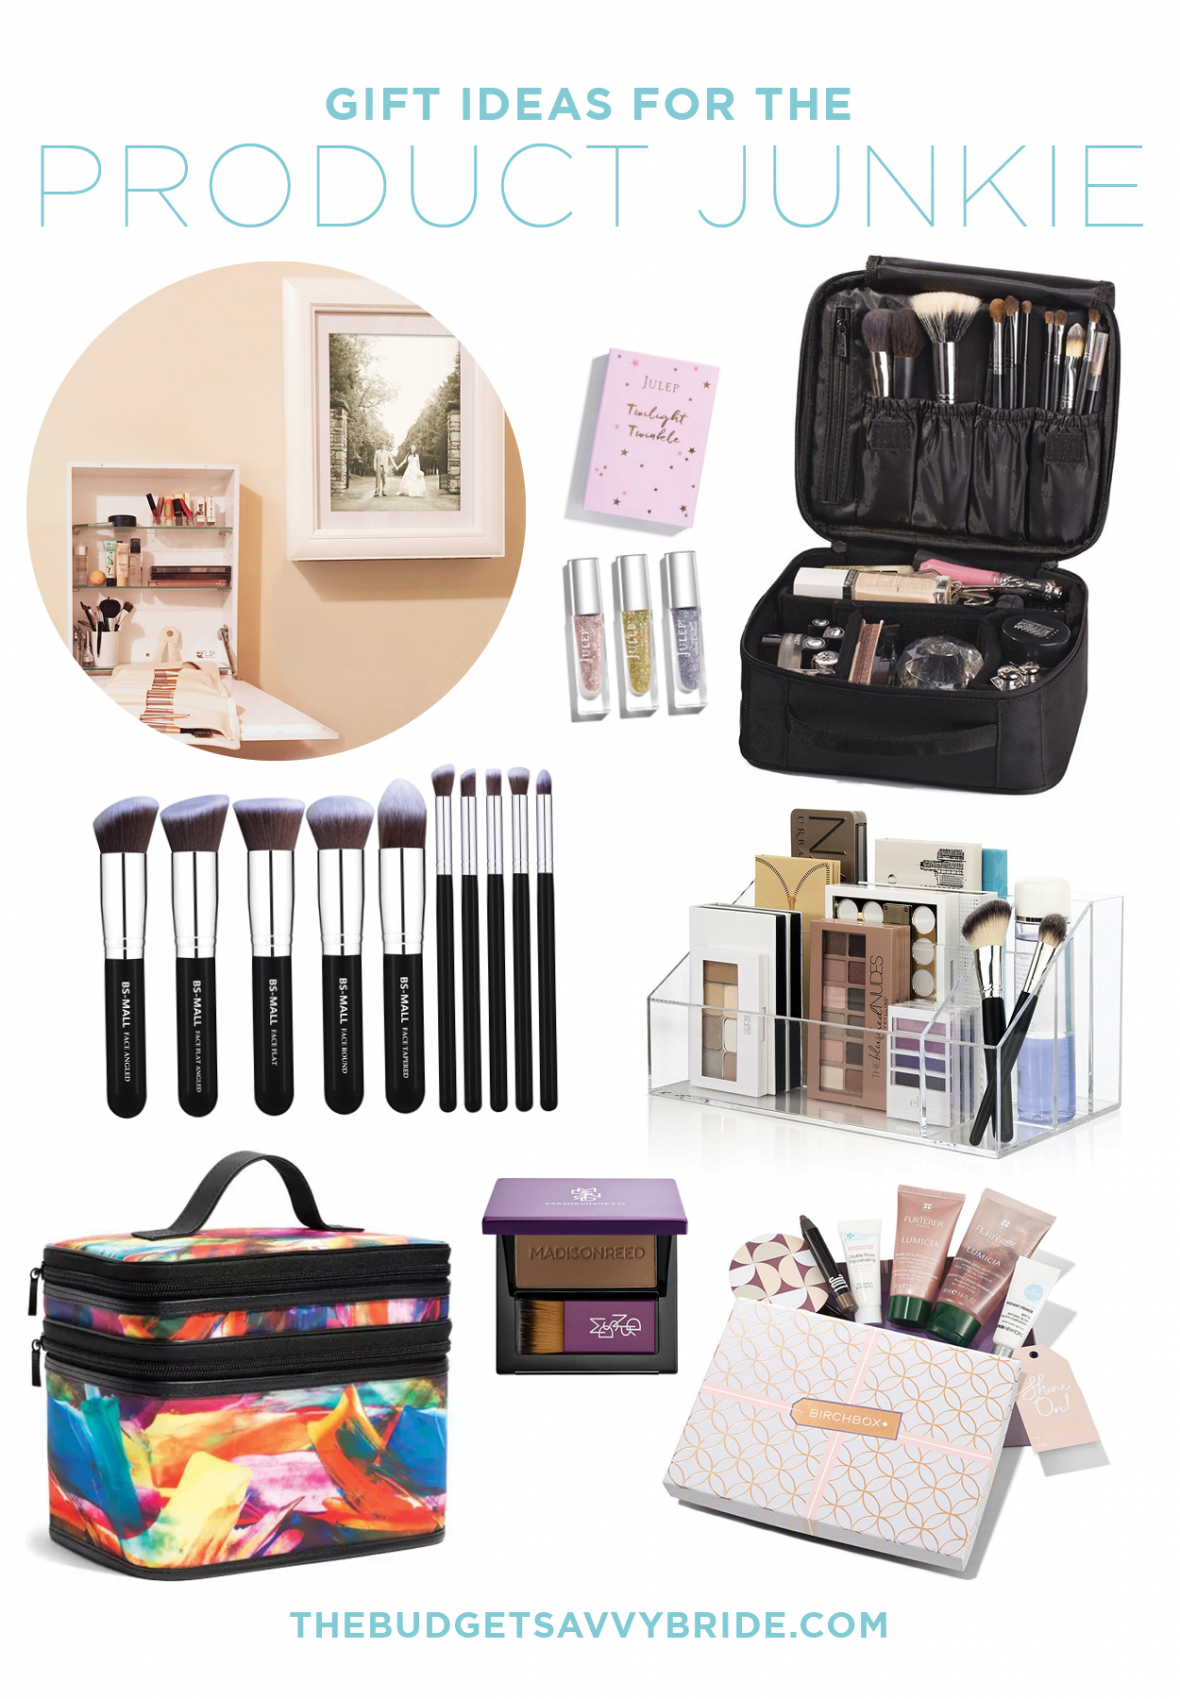 Gift Ideas for the Product Junkie